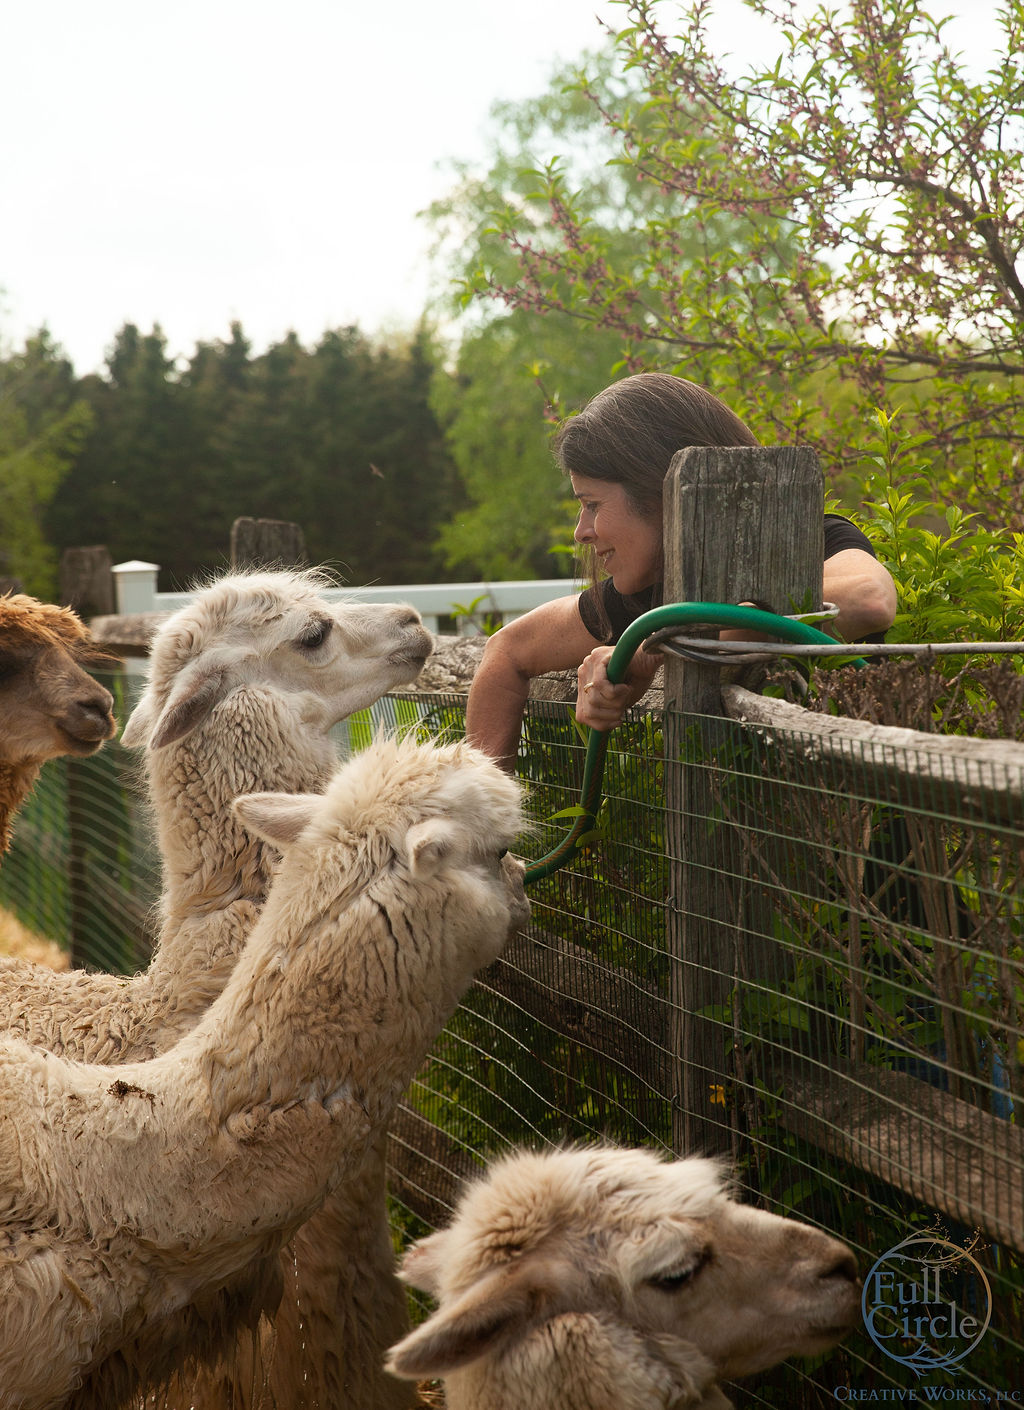 The alpaca girls prior to shearing